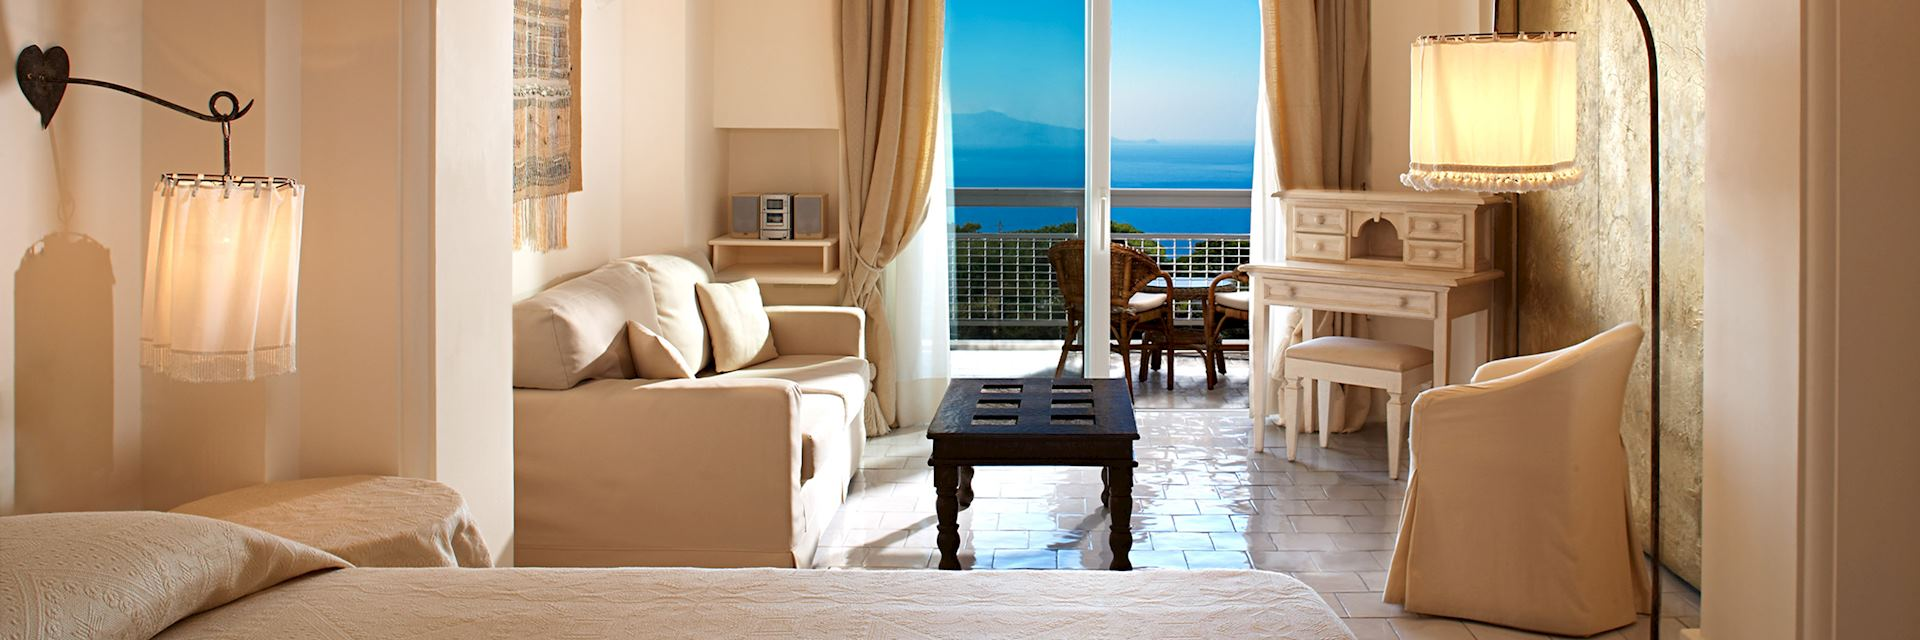 Capri Hotel and Spa